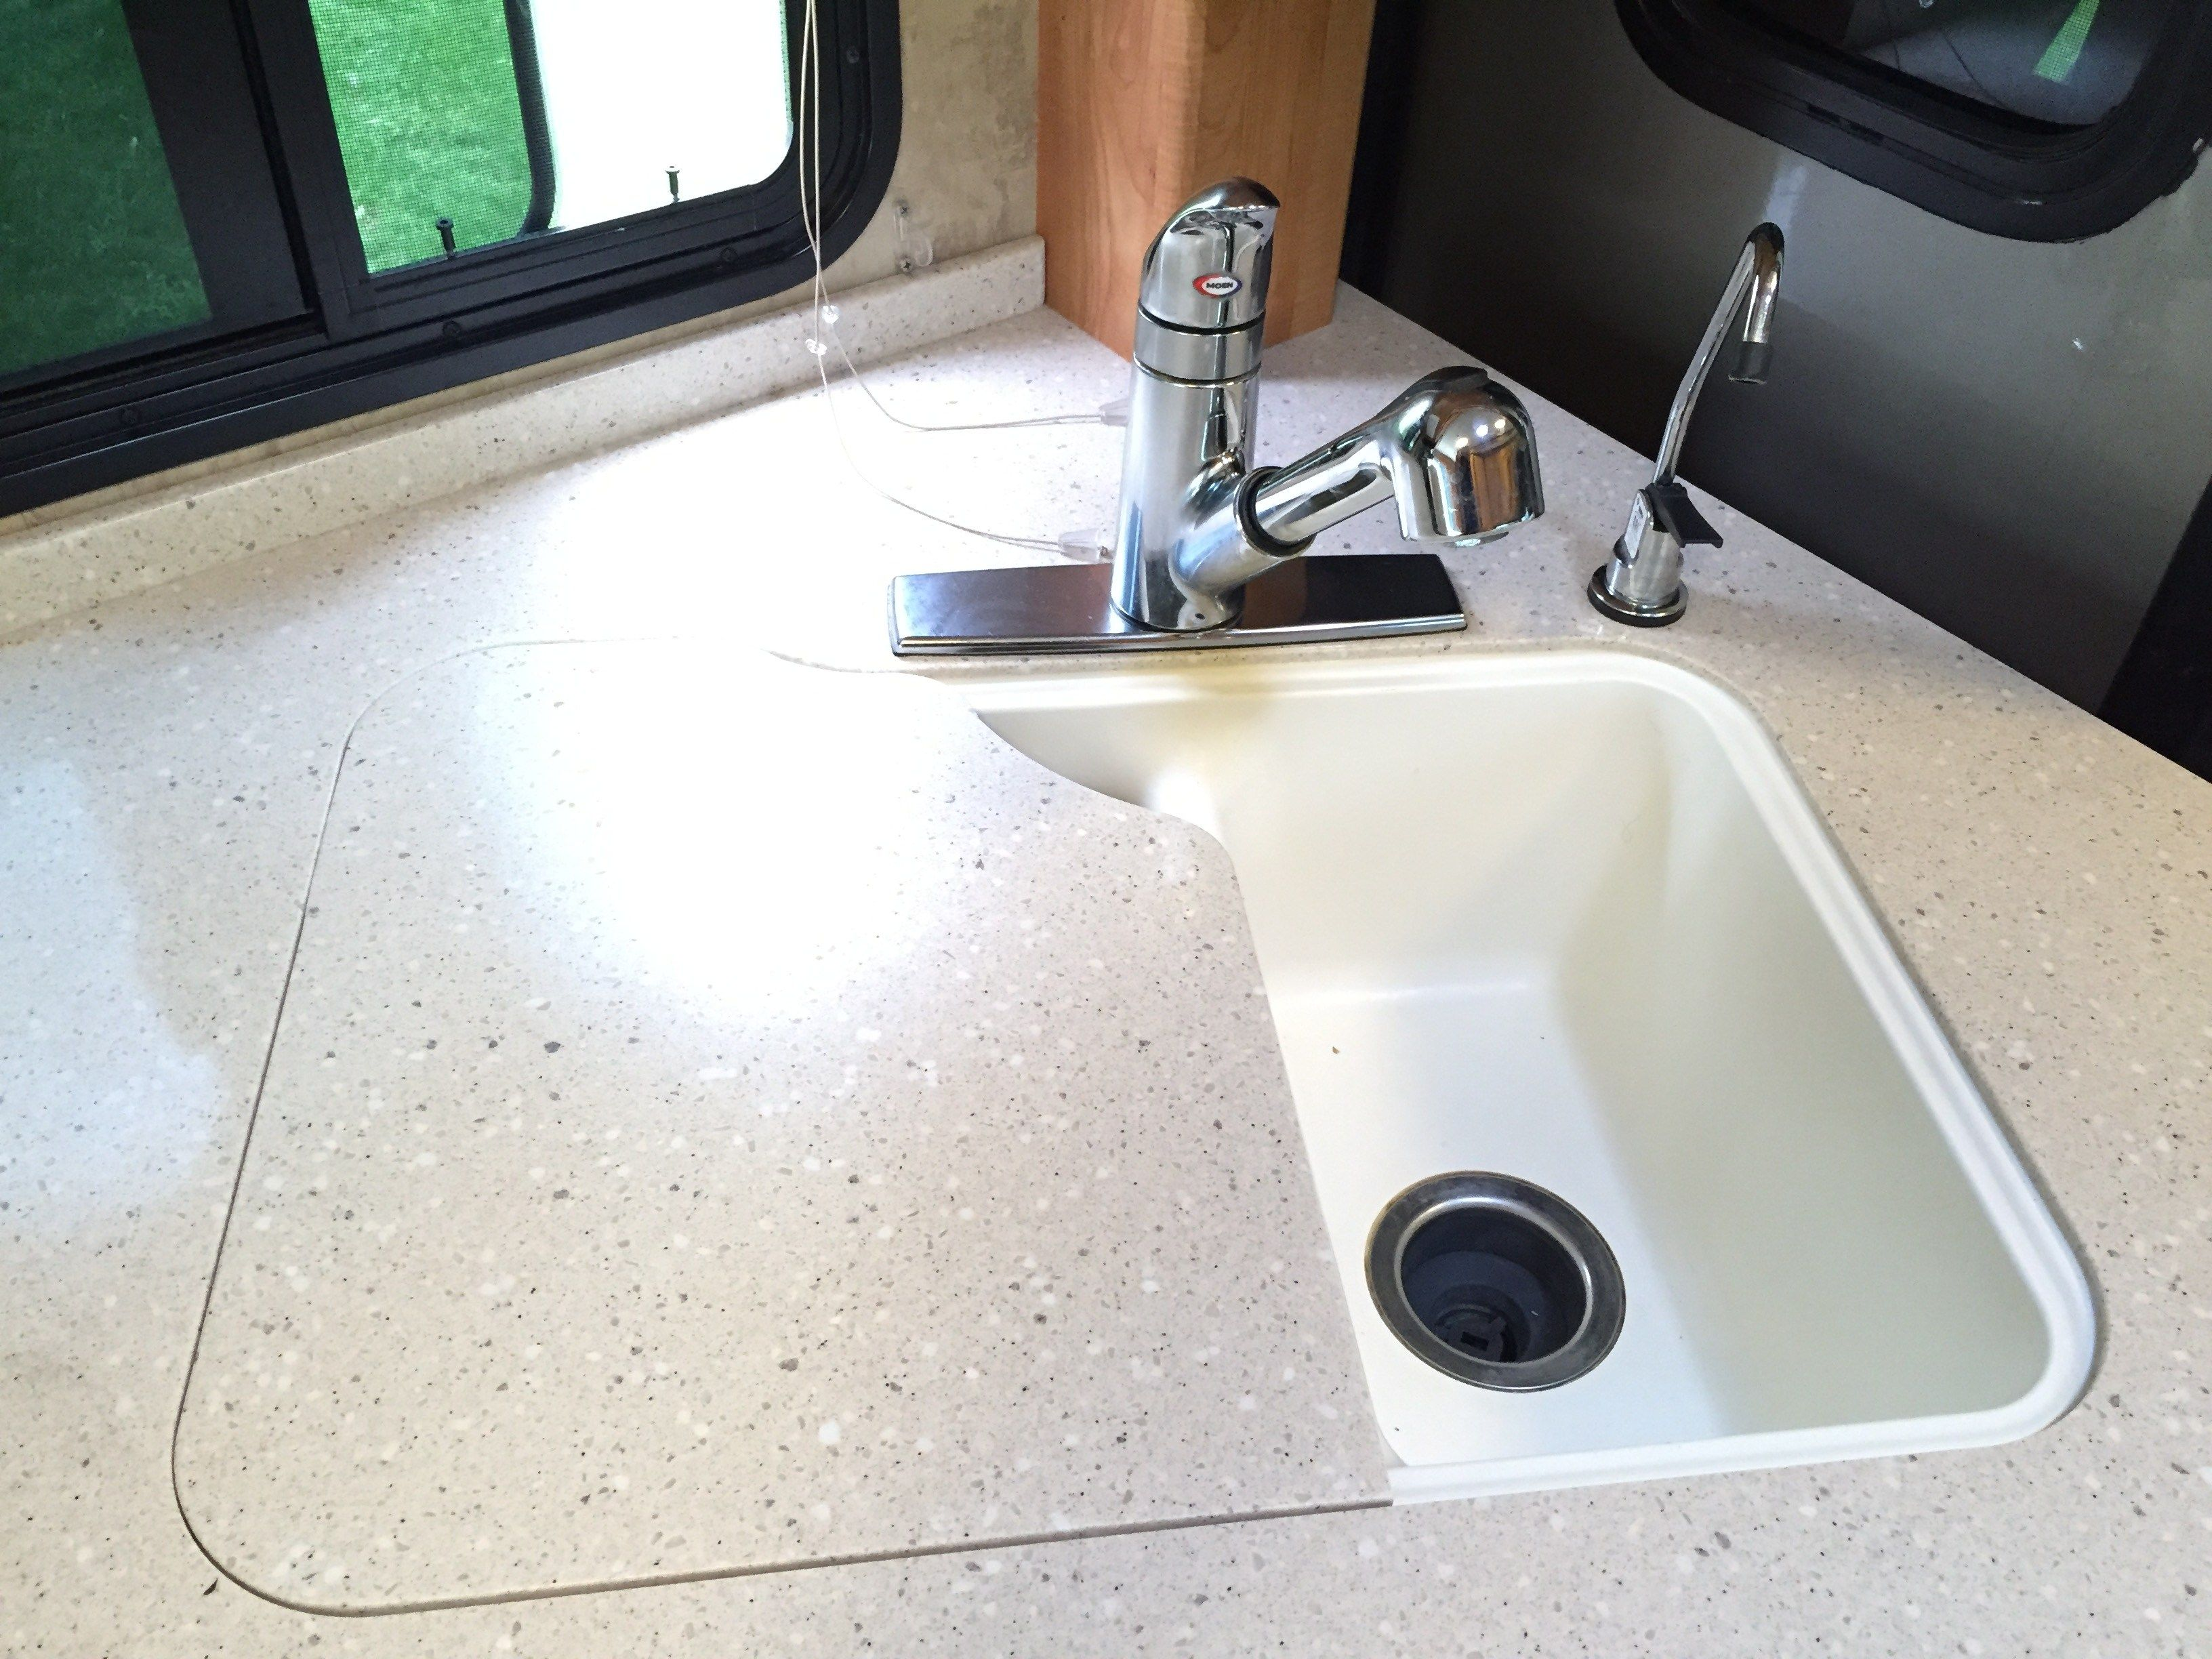 Genial Refinish Spülbecken Home Design Ideen Cool Kitchen Sink ...